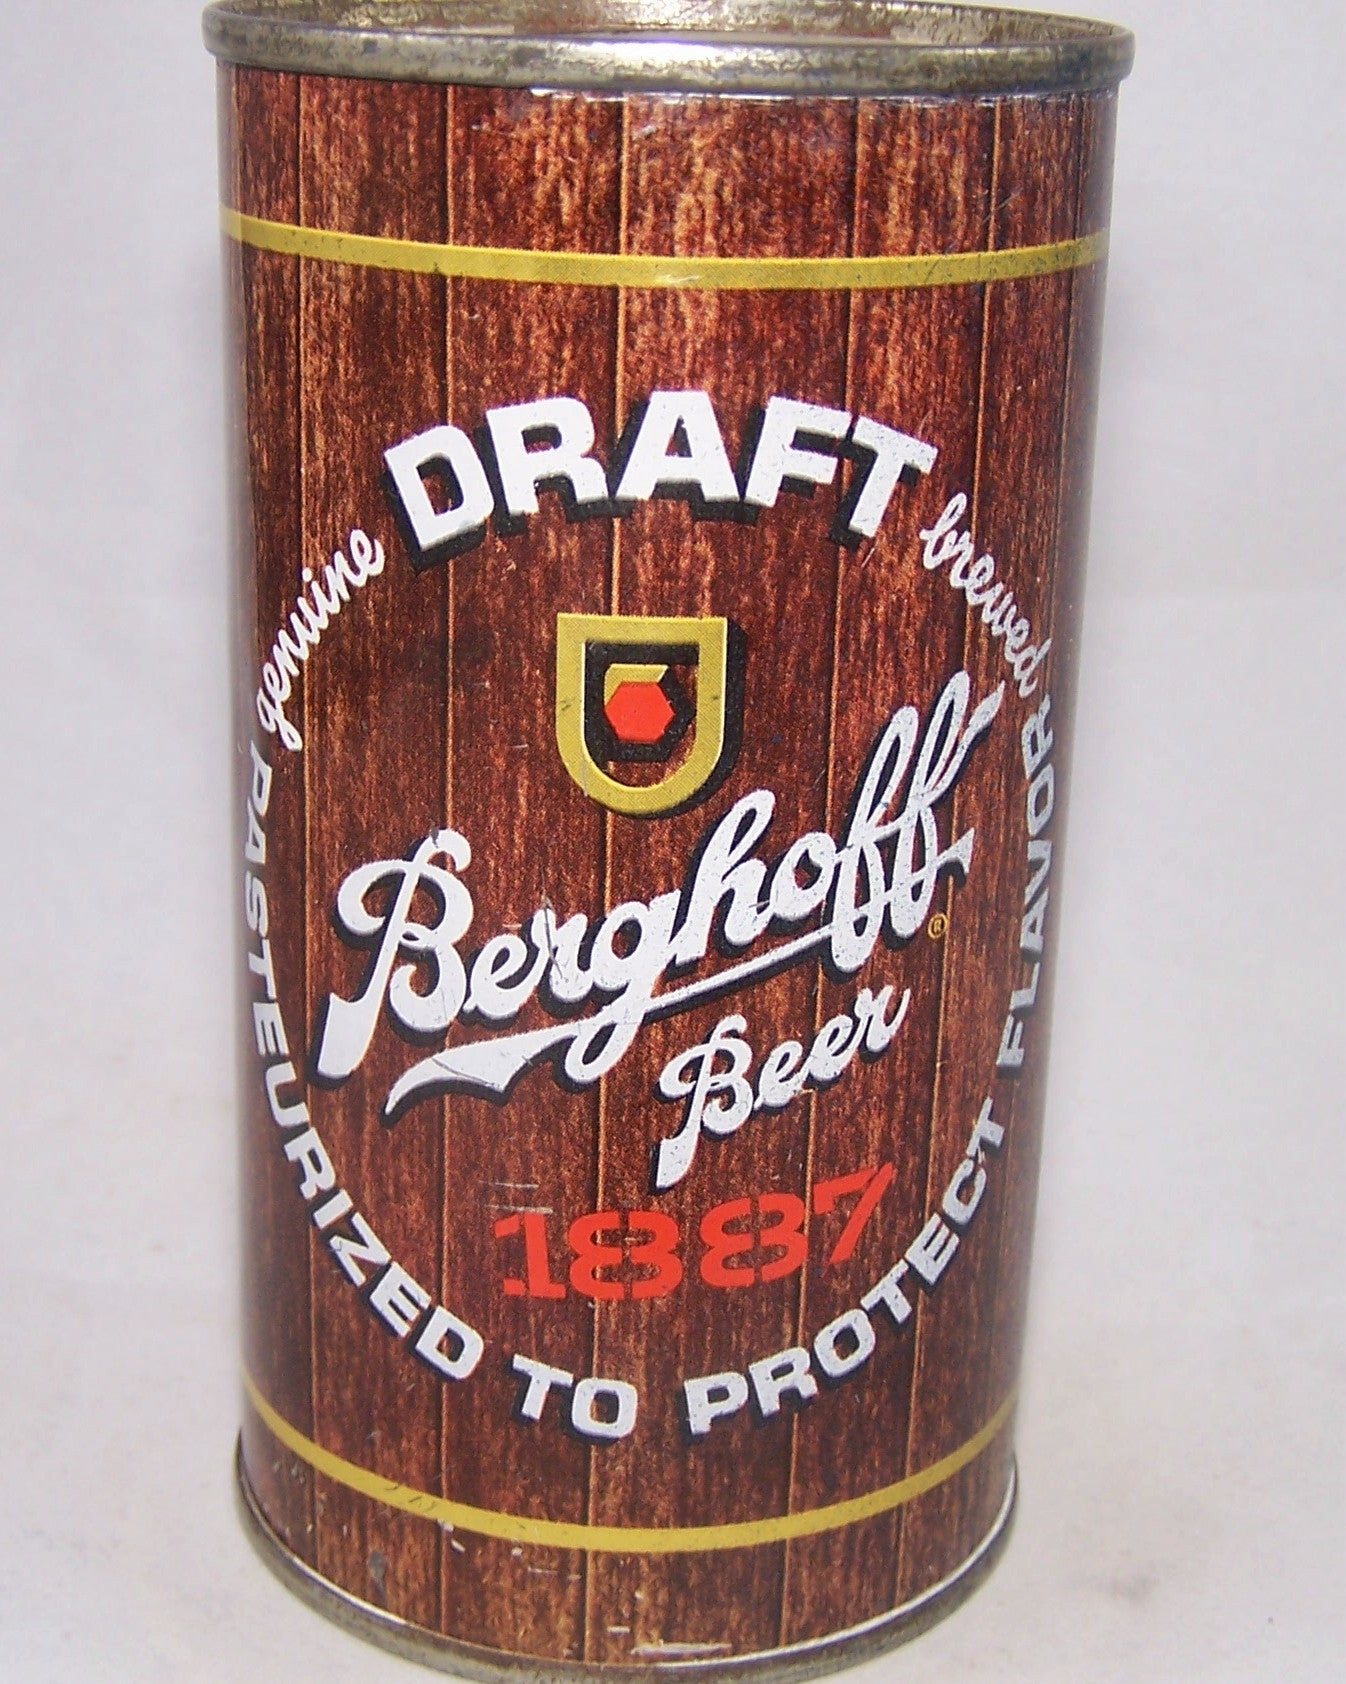 Berghoff 1887 Beer, USBC 36-08, Grade 1 Sold on 06/28/17